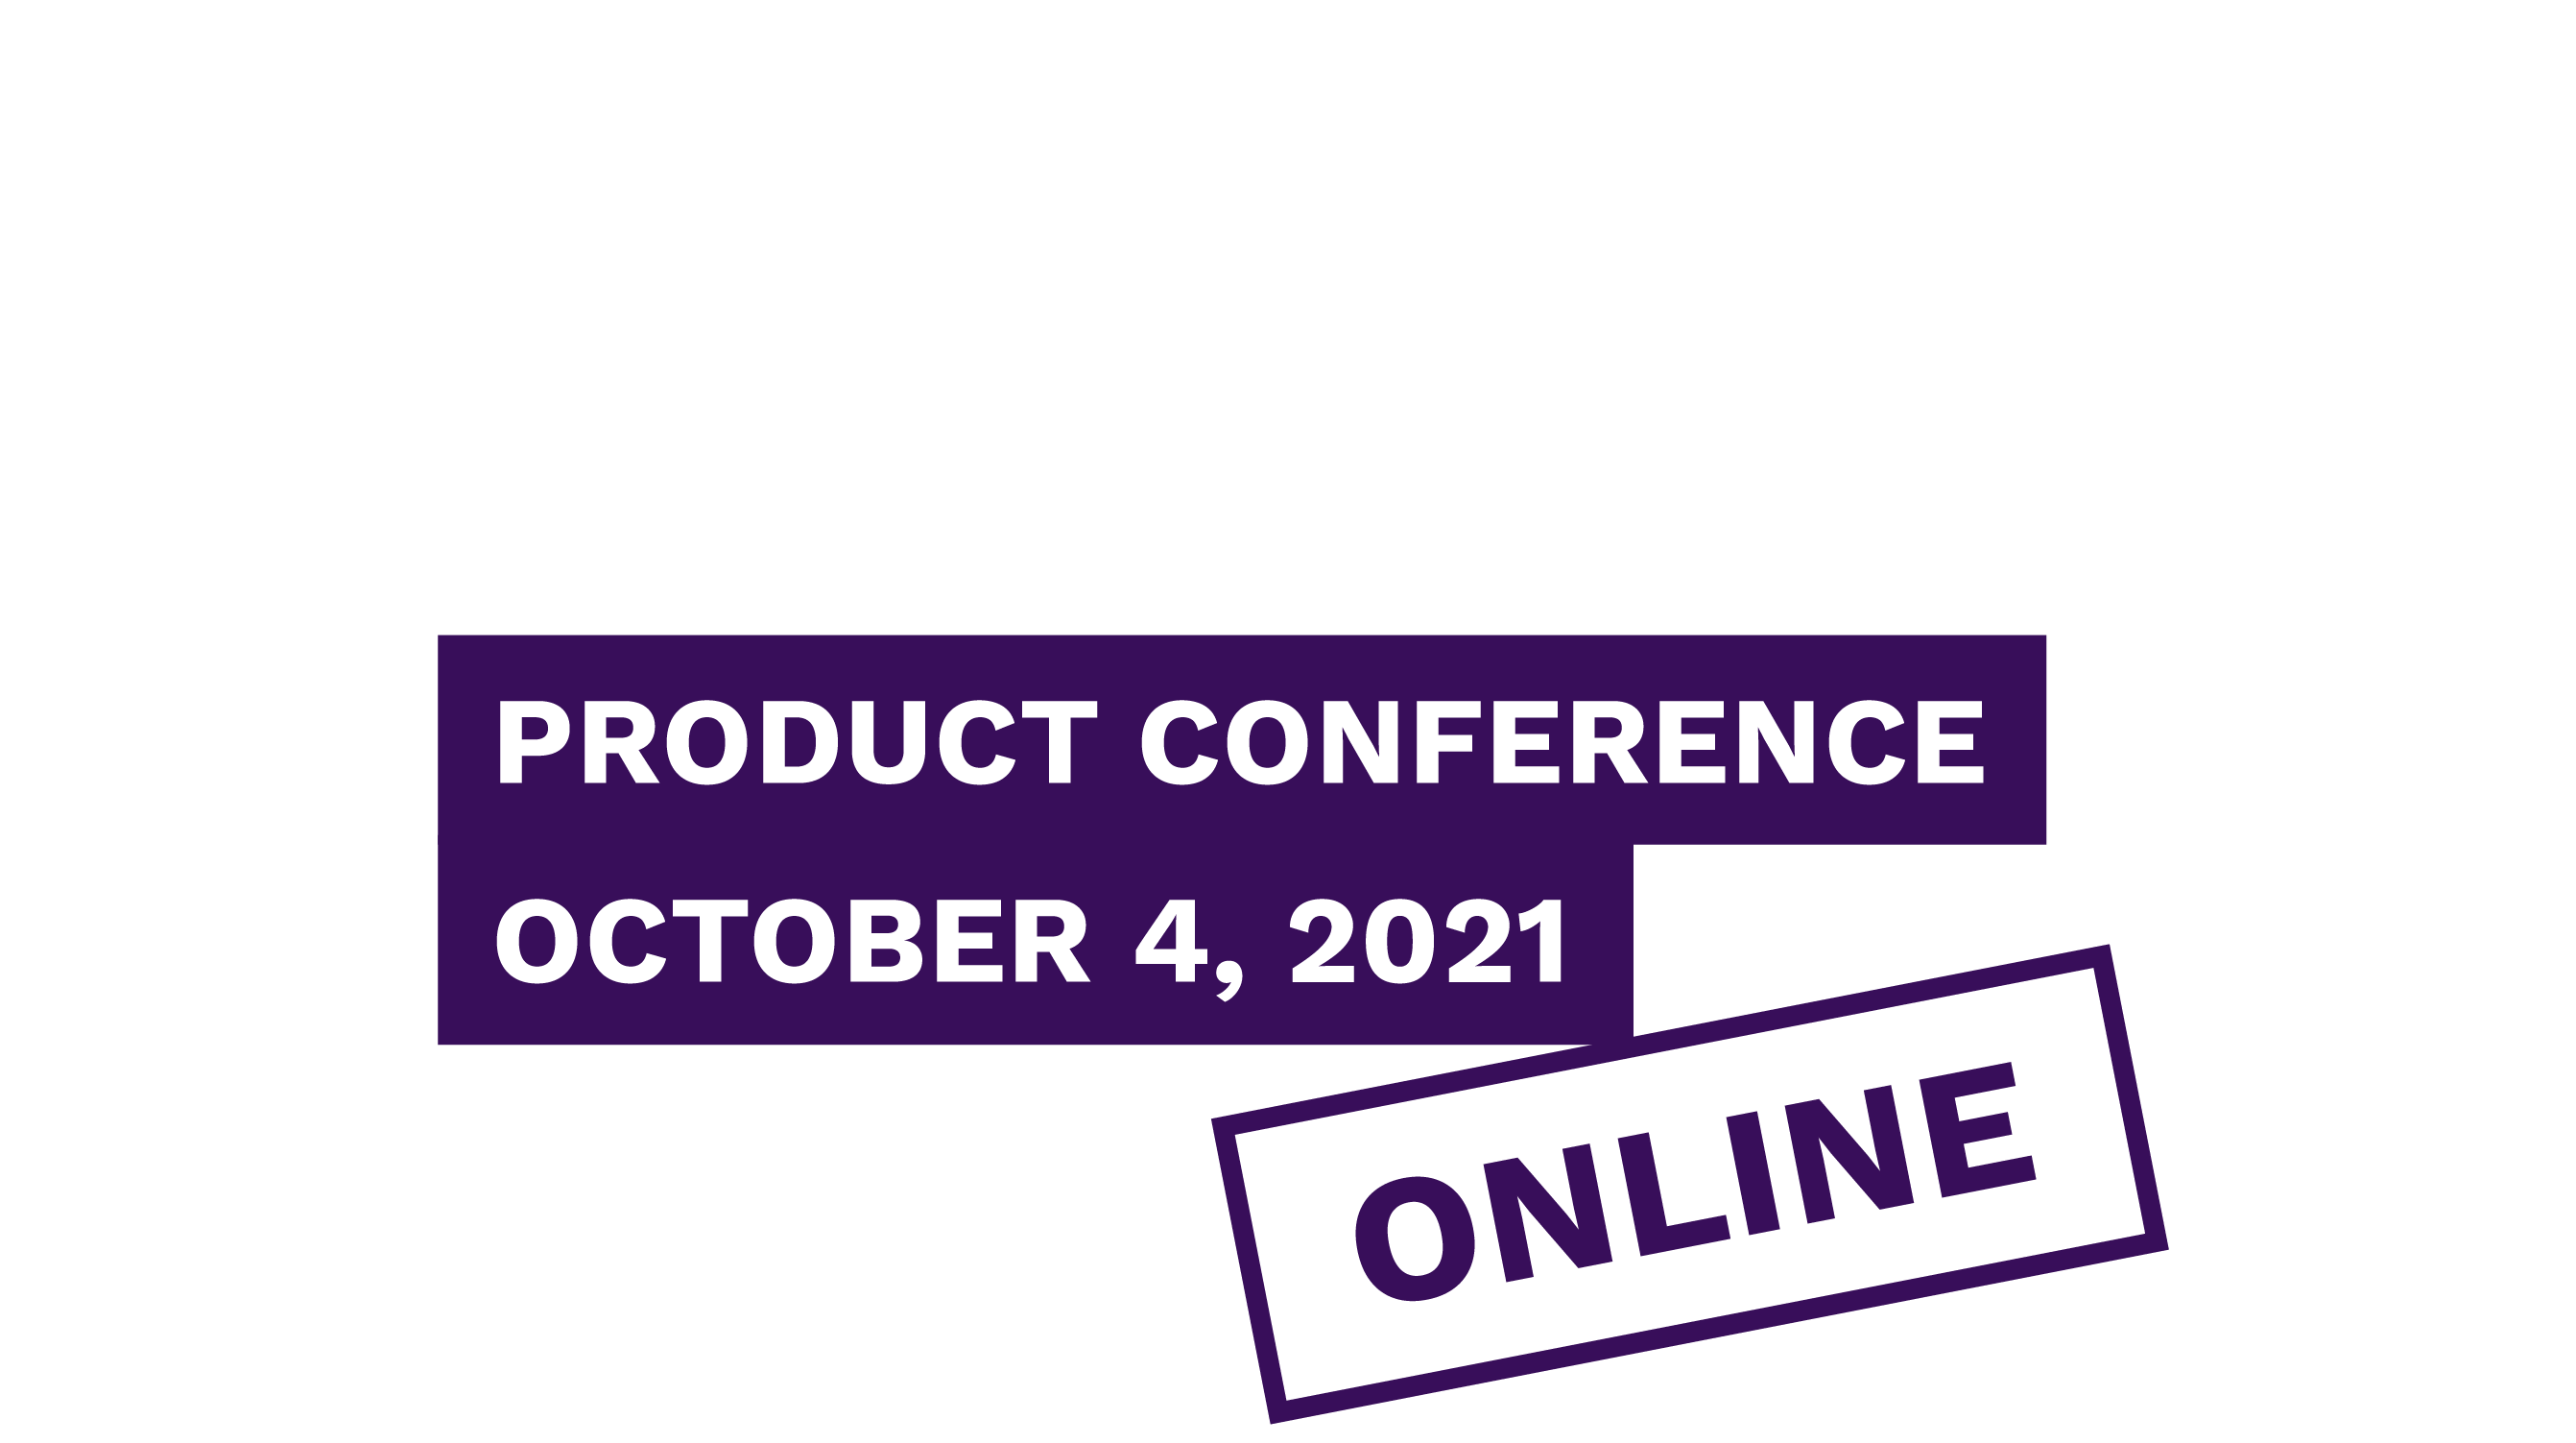 Impact, Product Conference, October 4, 2021 Budapest